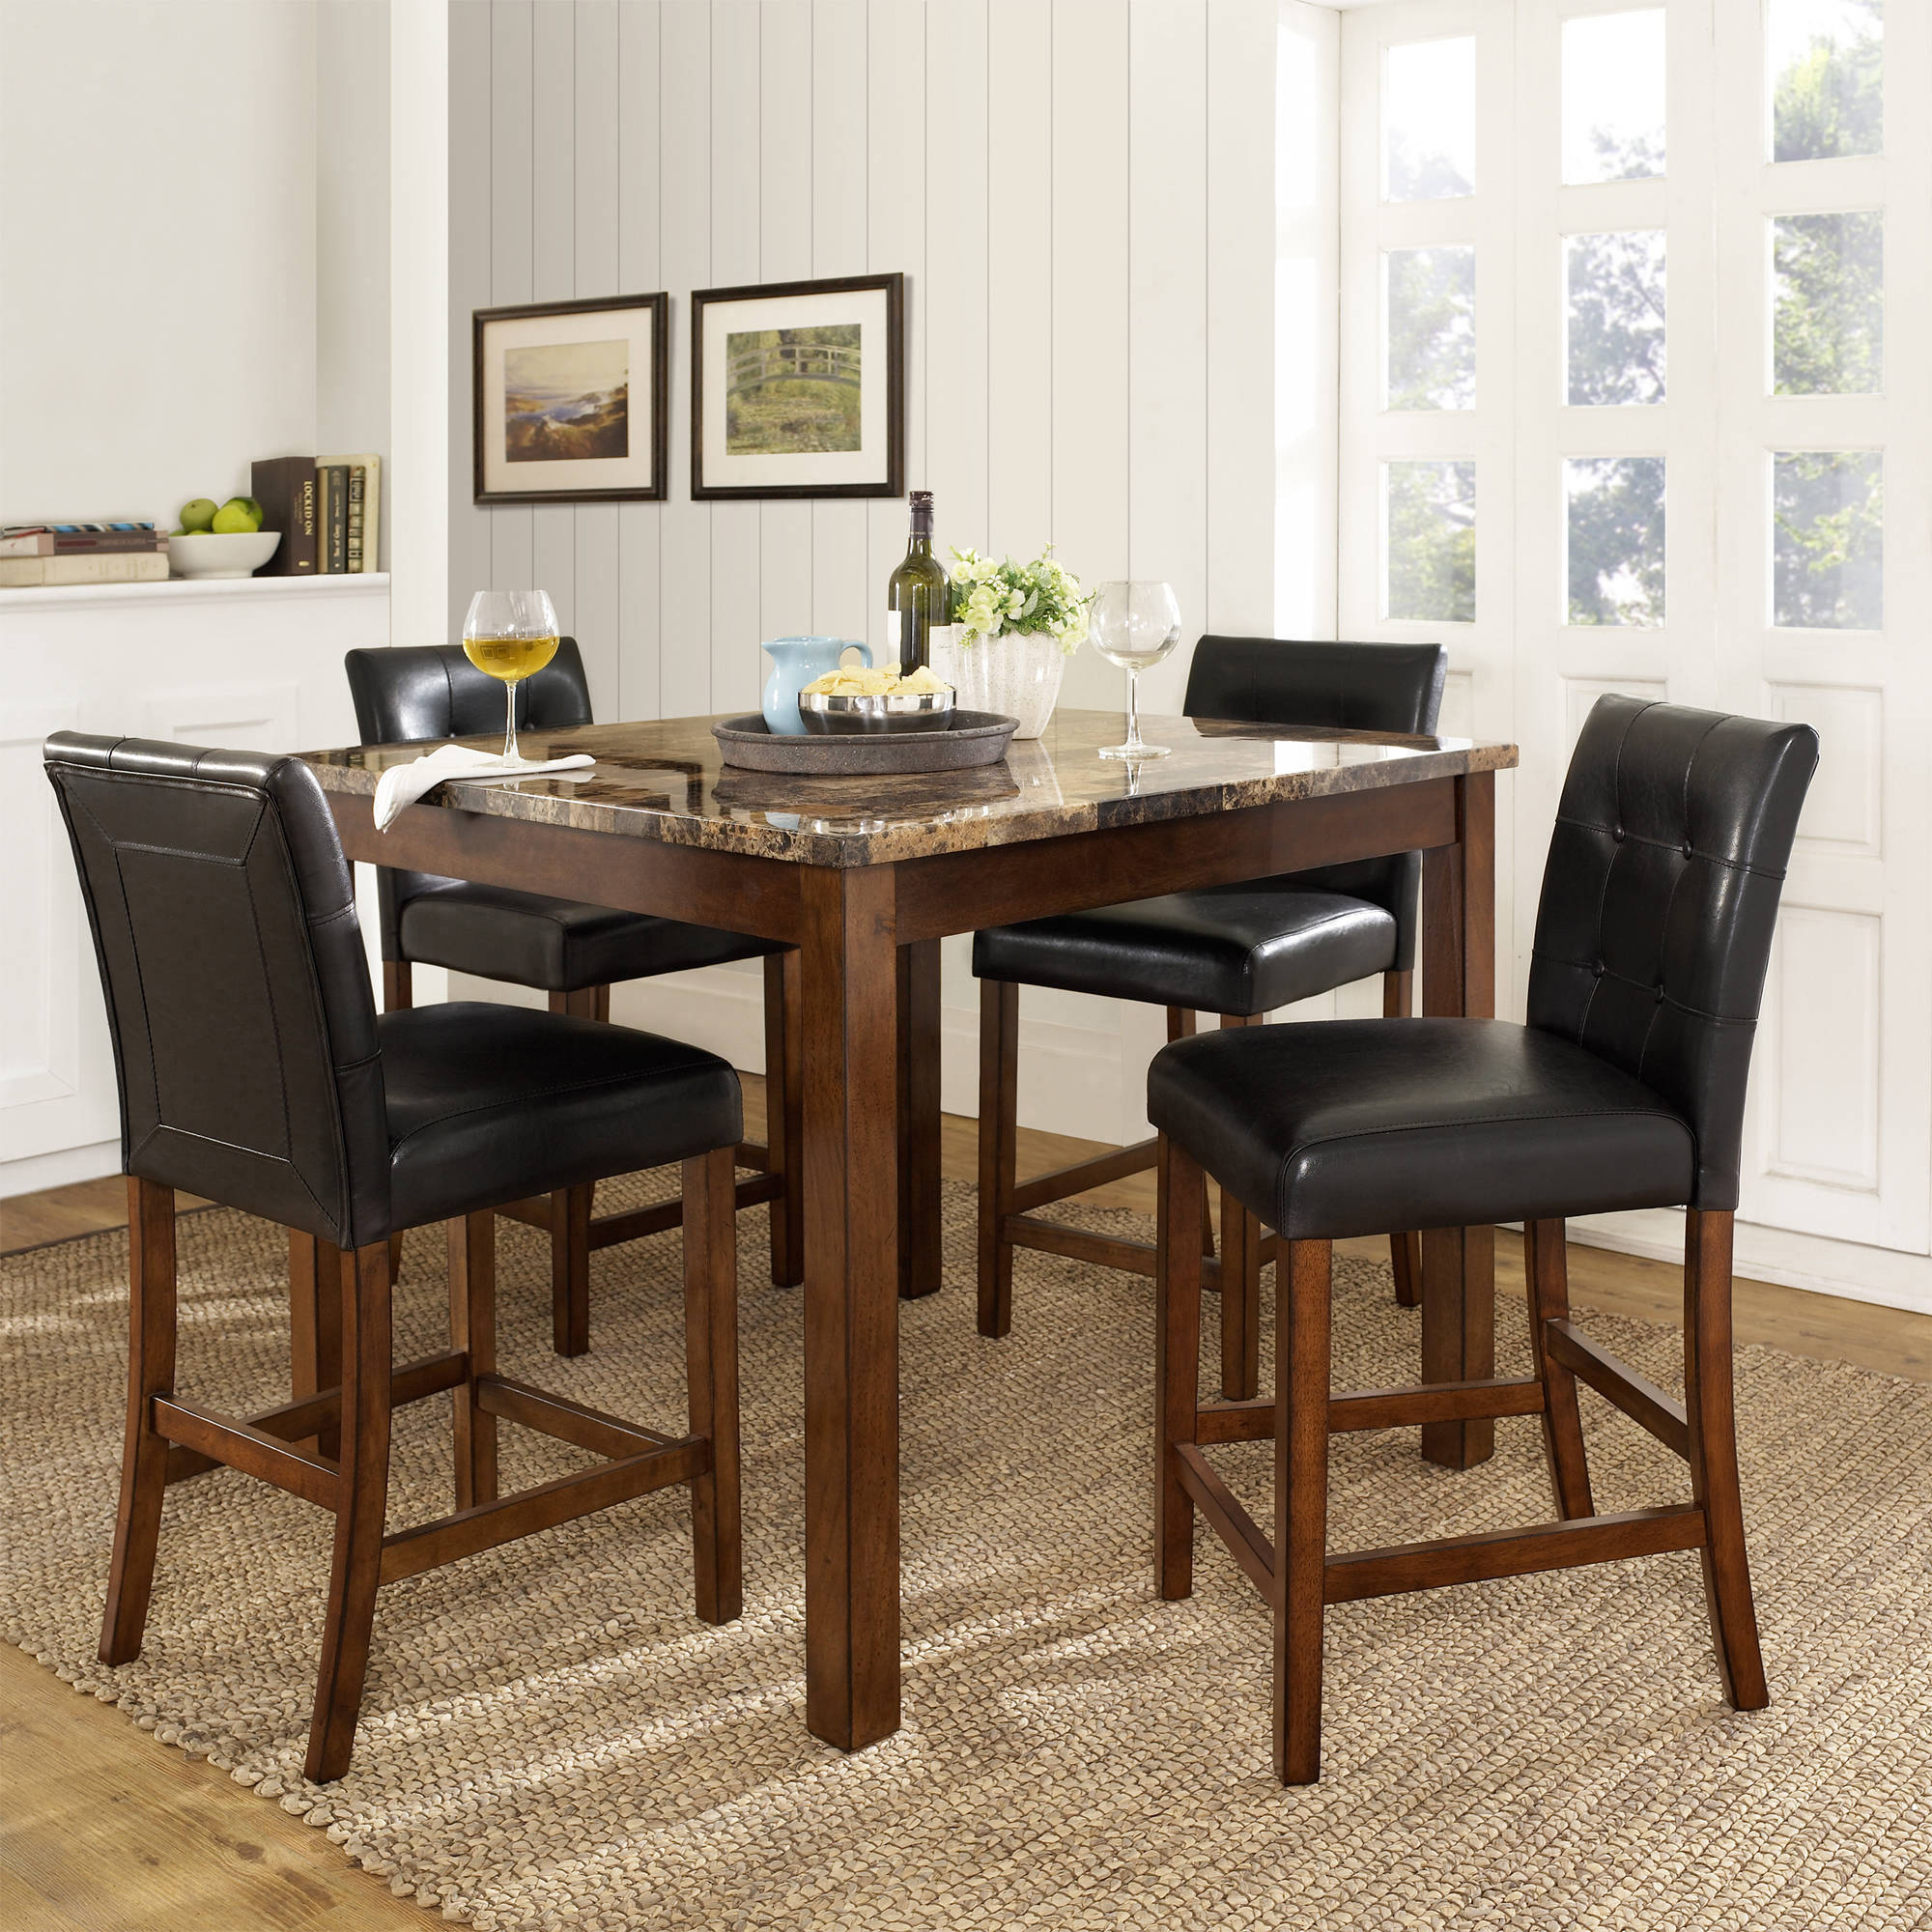 5 Piece Dining Room Set – Home Decor Ideas – Editorial Ink Pertaining To Latest Kieffer 5 Piece Dining Sets (View 18 of 20)